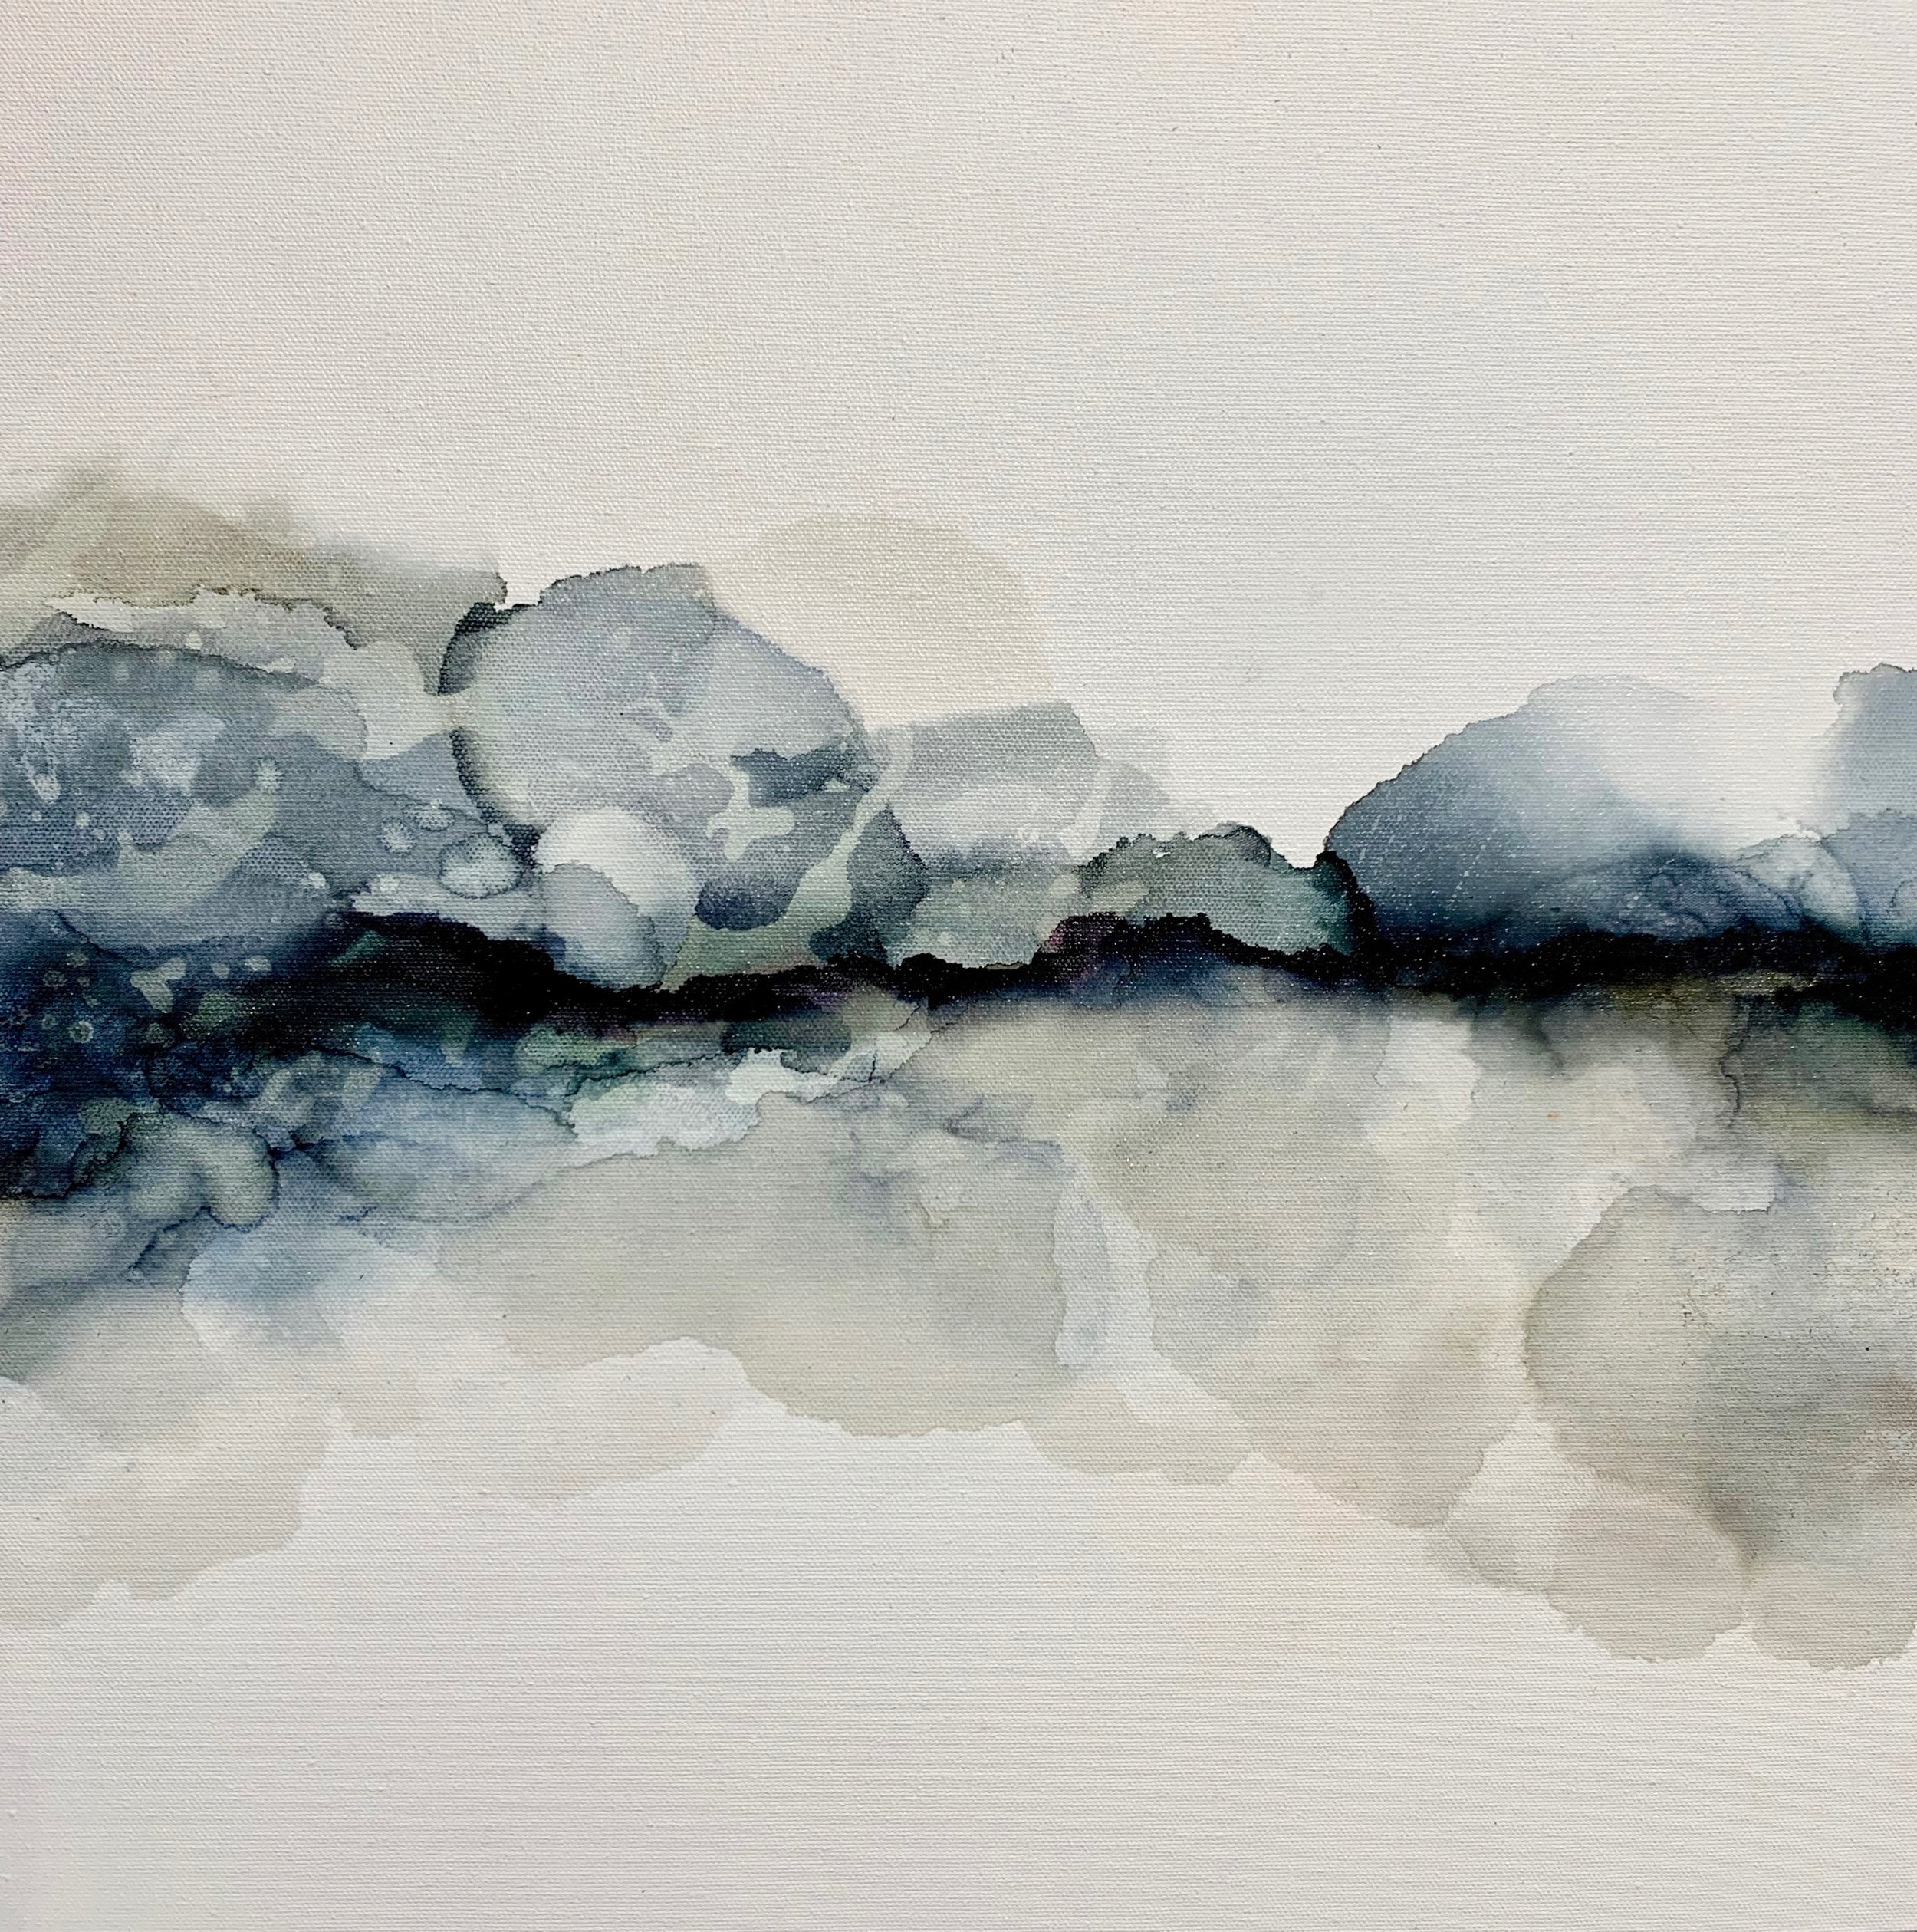 Various Storms & Stories#Alcohol Ink on Canvas#18 x 18 inches#SOLD